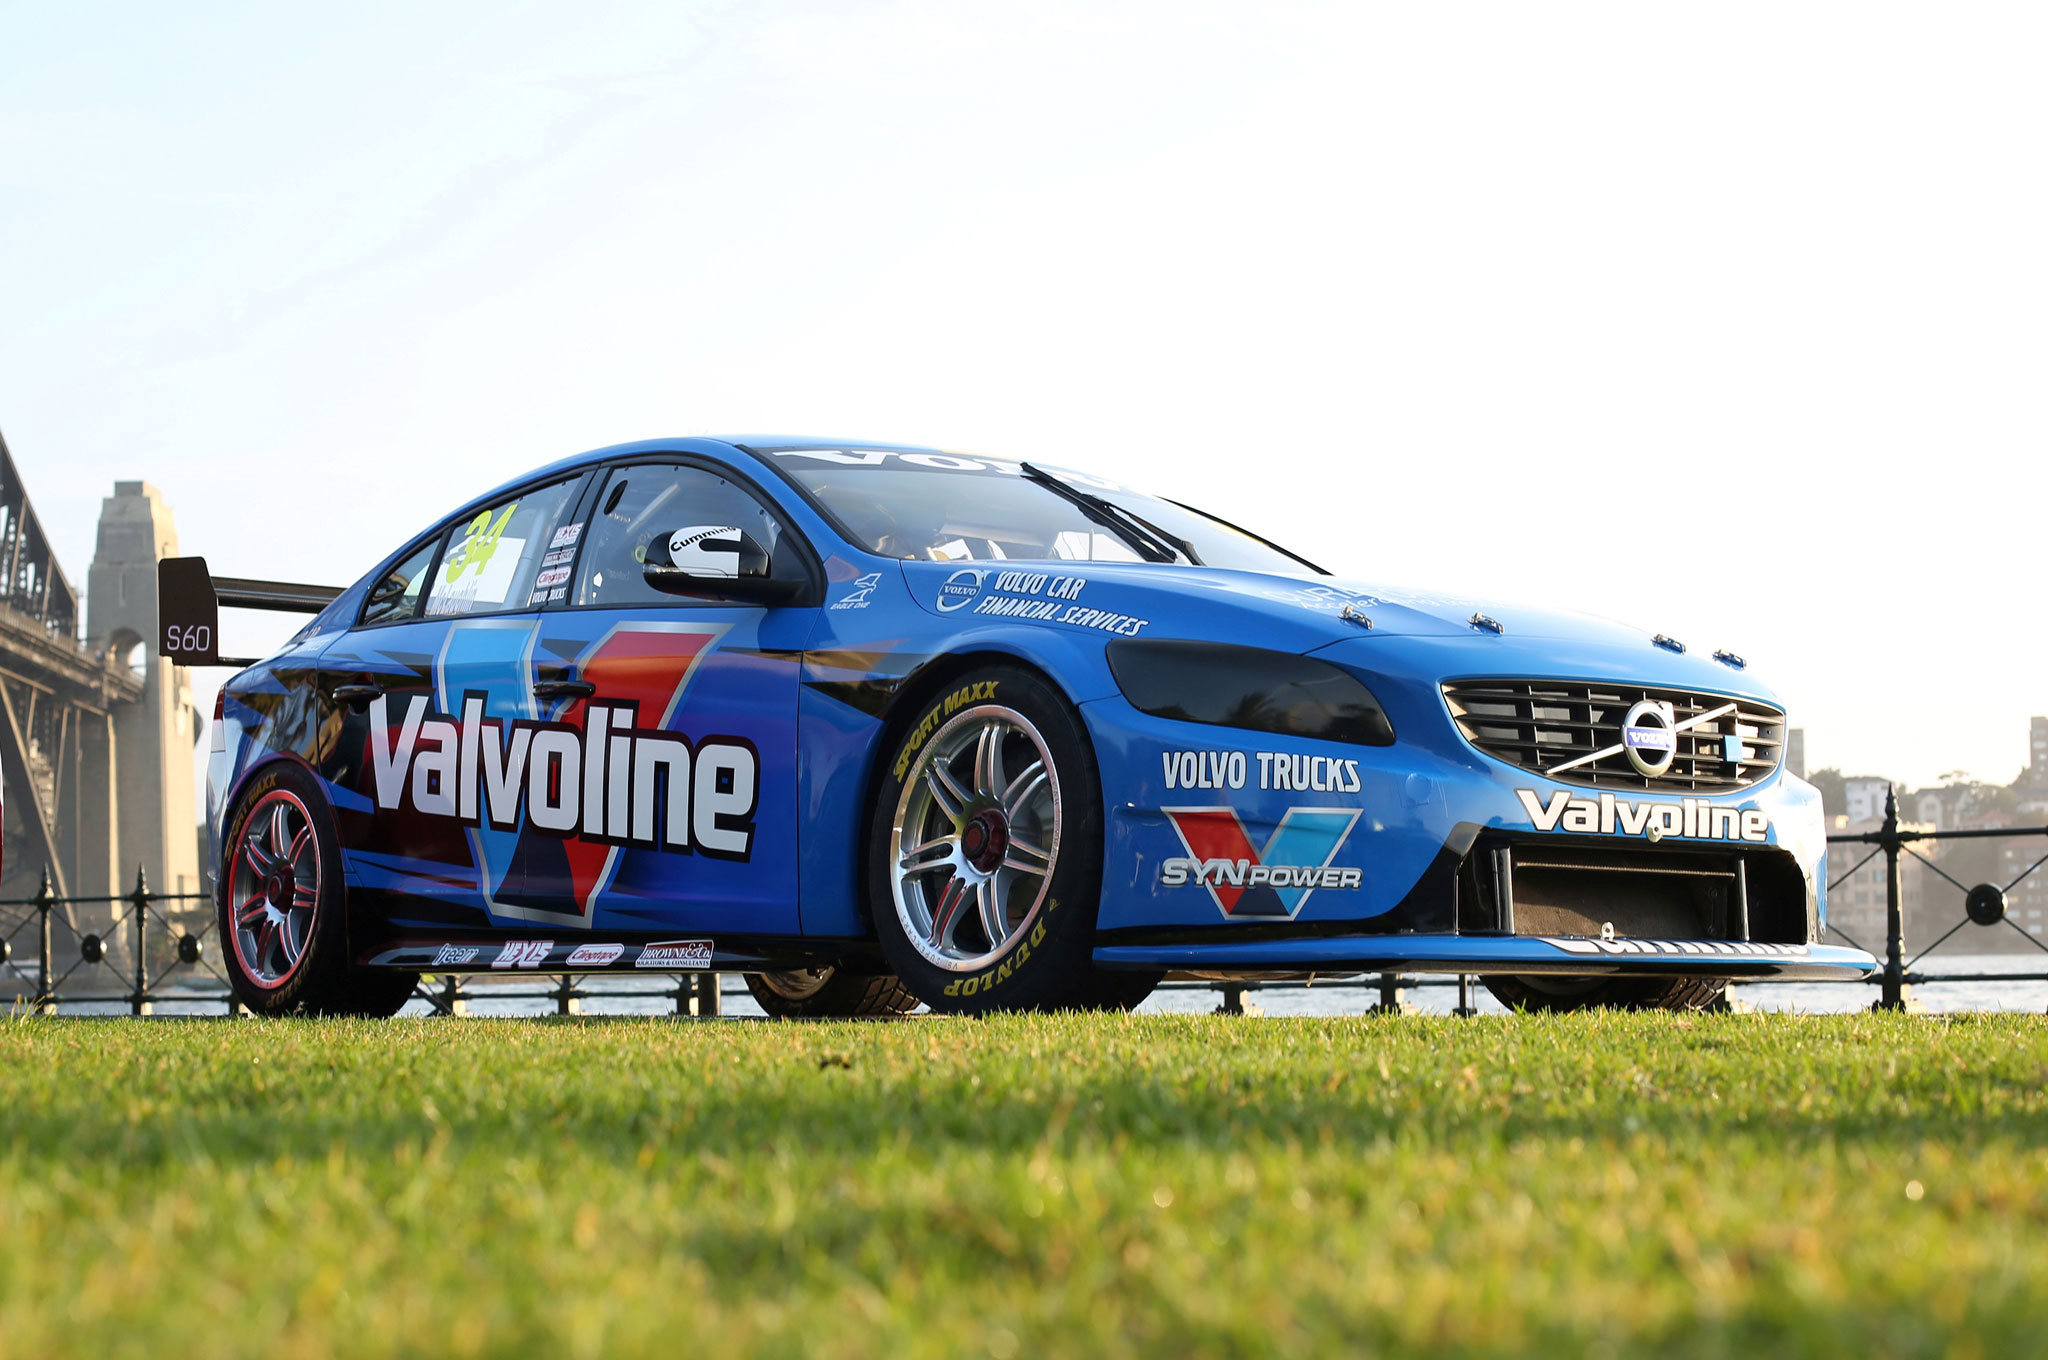 New Volvo S60 V8 Supercar Driven Across Sydney Harbour Bridge